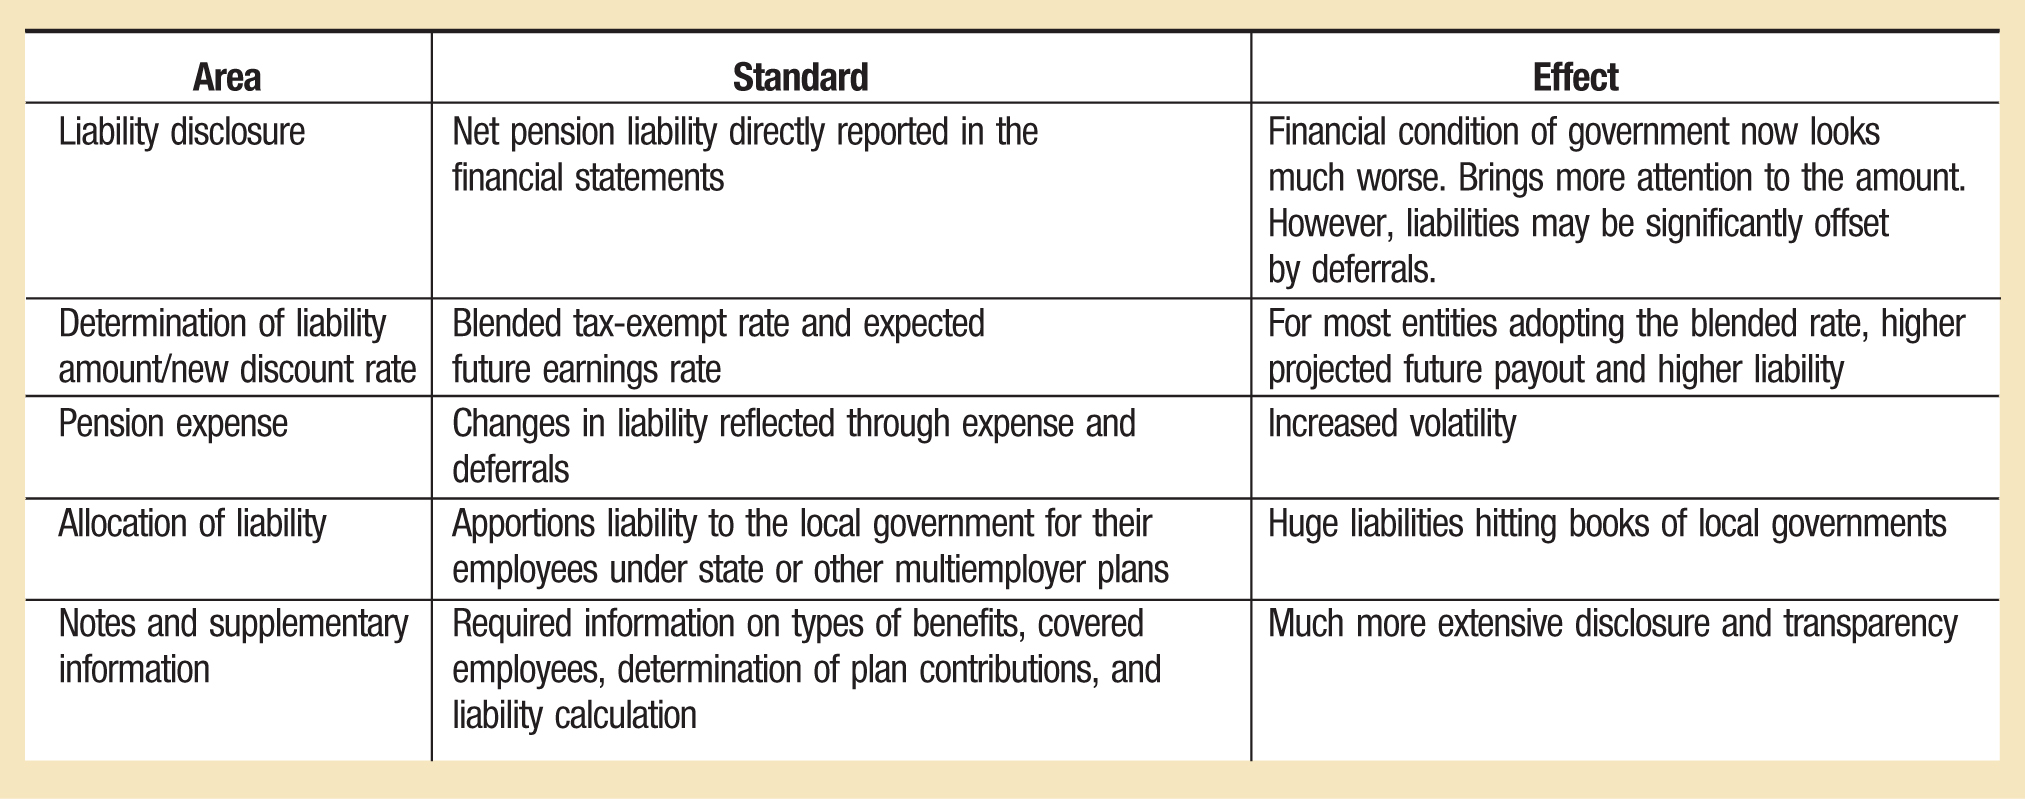 Area; Standard; Effect Liability disclosure; Net pension liability directly reported in the financial statements; Financial condition of government now looks much worse. Brings more attention to the amount. However, liabilities may be significantly offset by deferrals. Determination of liability amount/new discount rate; Blended tax-exempt rate and expected future earnings rate; For most entities adopting the blended rate, higher projected future payout and higher liability Pension expense; Changes in liability reflected through expense and deferrals; Increased volatility Allocation of liability; Apportions liability to the local government for their employees under state or other multiemployer plans; Huge liabilities hitting books of local governments Notes and supplementary information; Required information on types of benefits, covered employees, determination of plan contributions, and liability calculation; Much more extensive disclosure and transparency